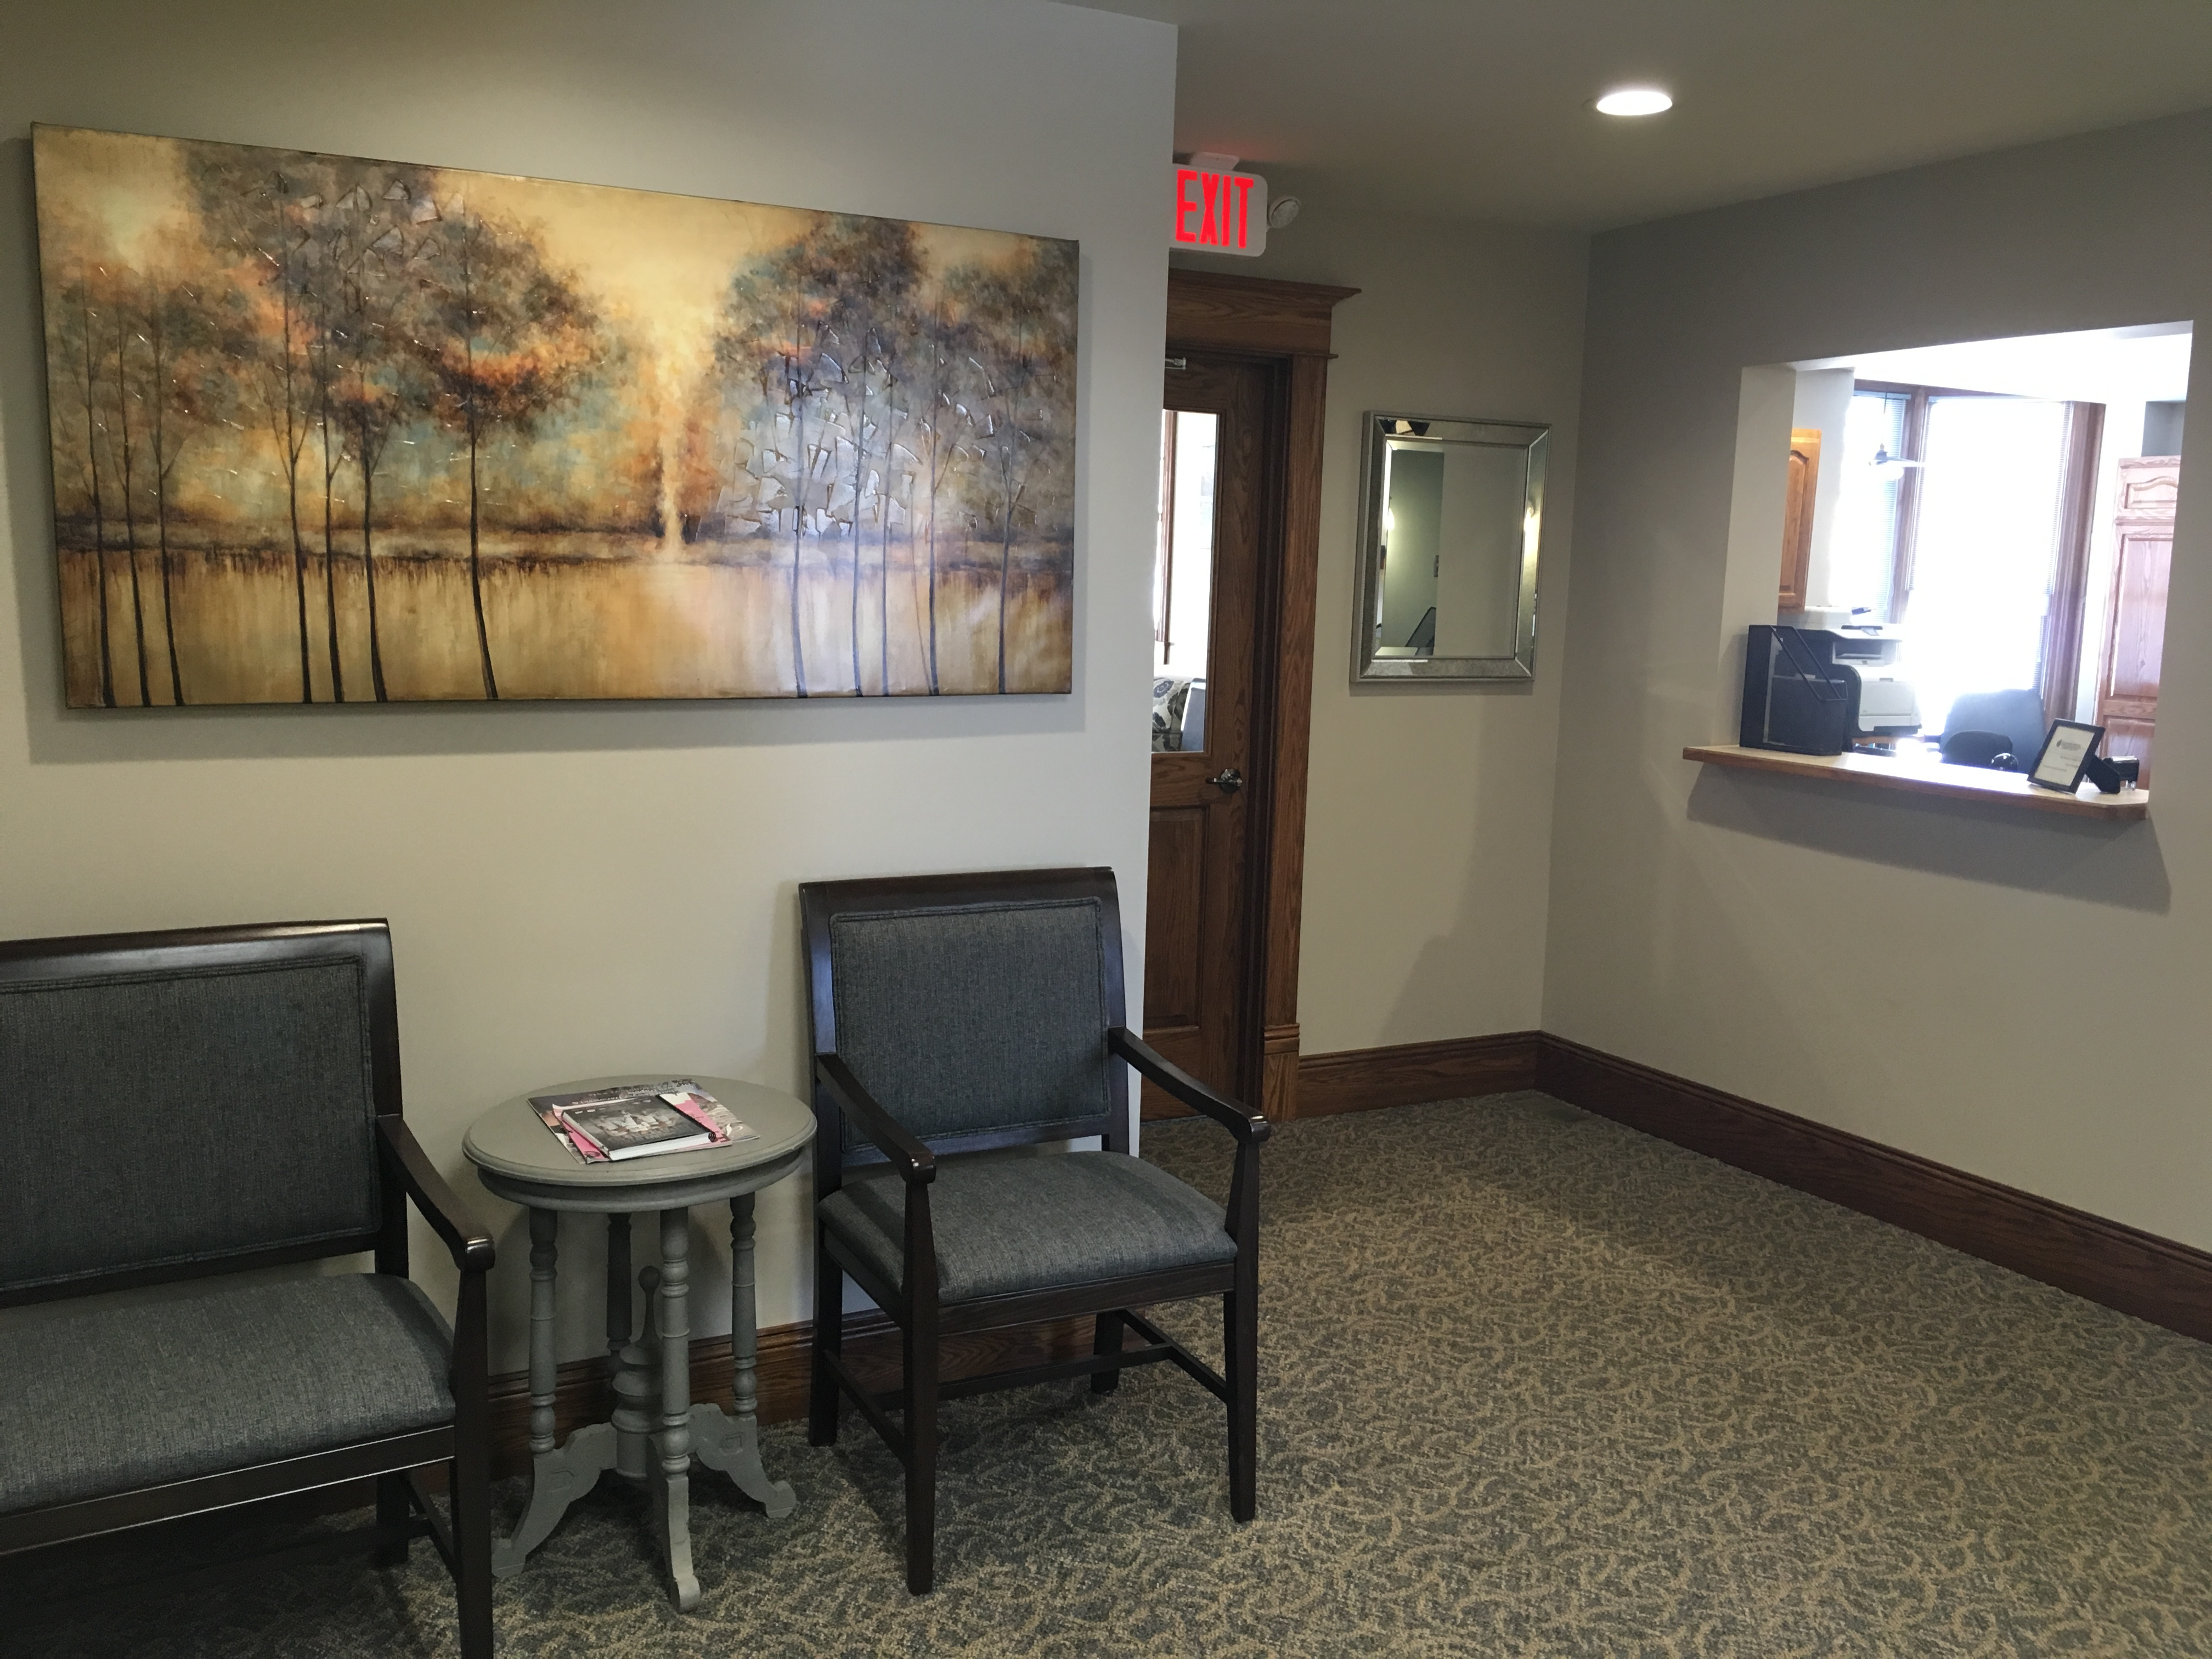 This is a sitting area for patients waiting to checkout. We made sure to include a mirror again so you can check out your smile before you go!